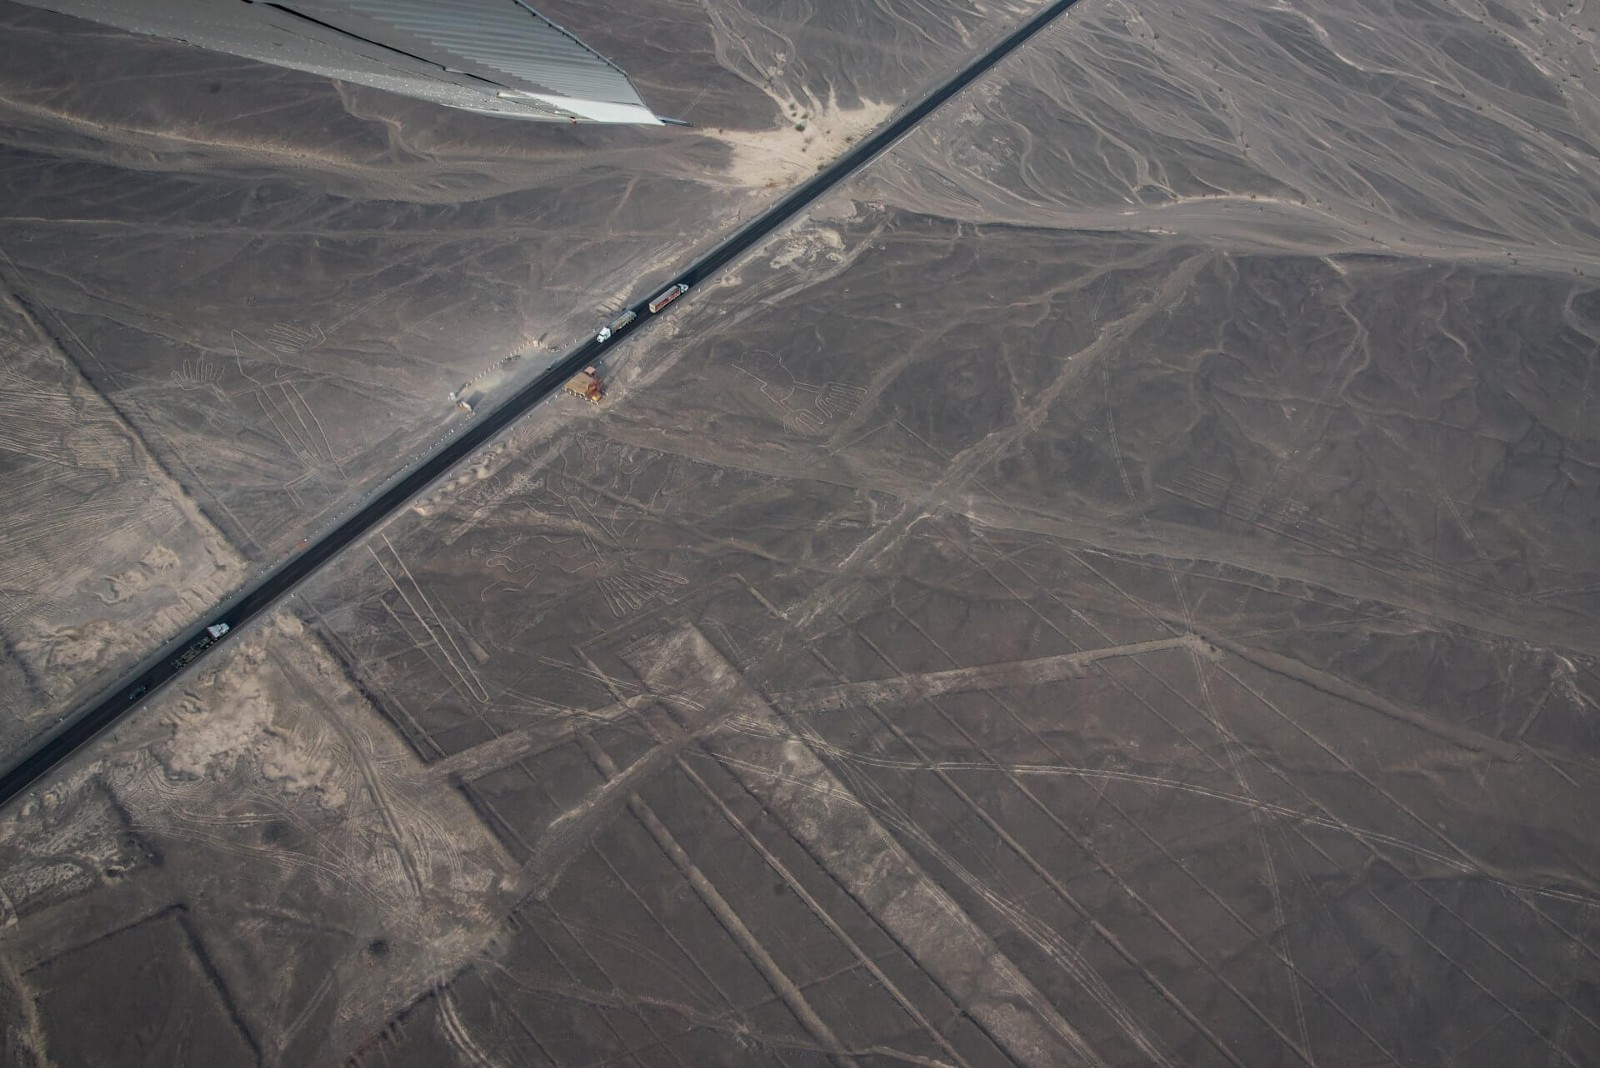 Nazca lines from Cessna small plane in Peru